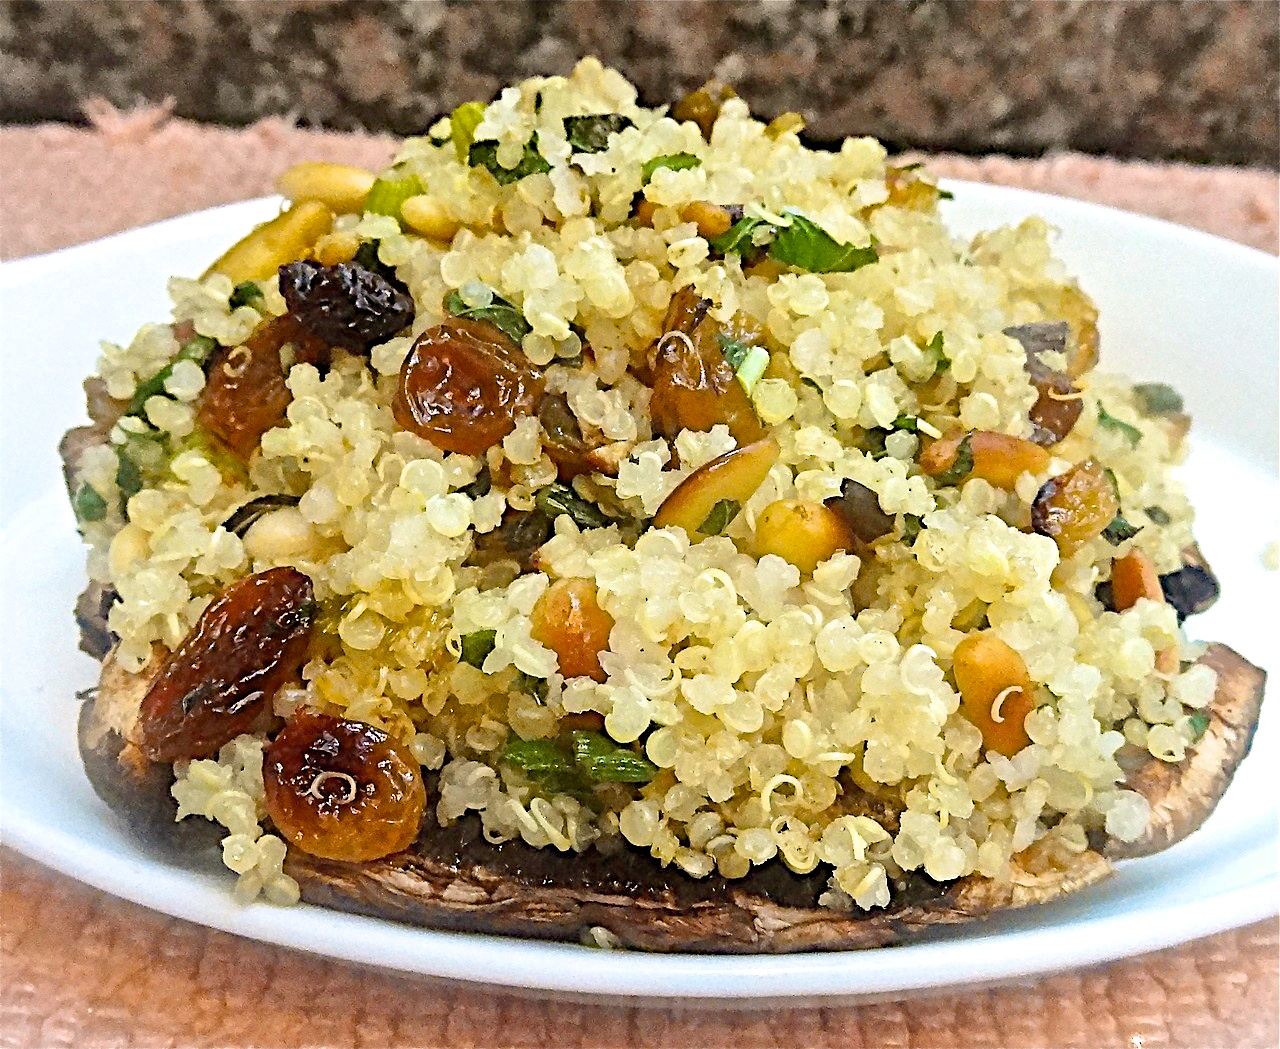 Quinoa Stuffed Portobello Mushrooms with Raisins and Pine Nuts